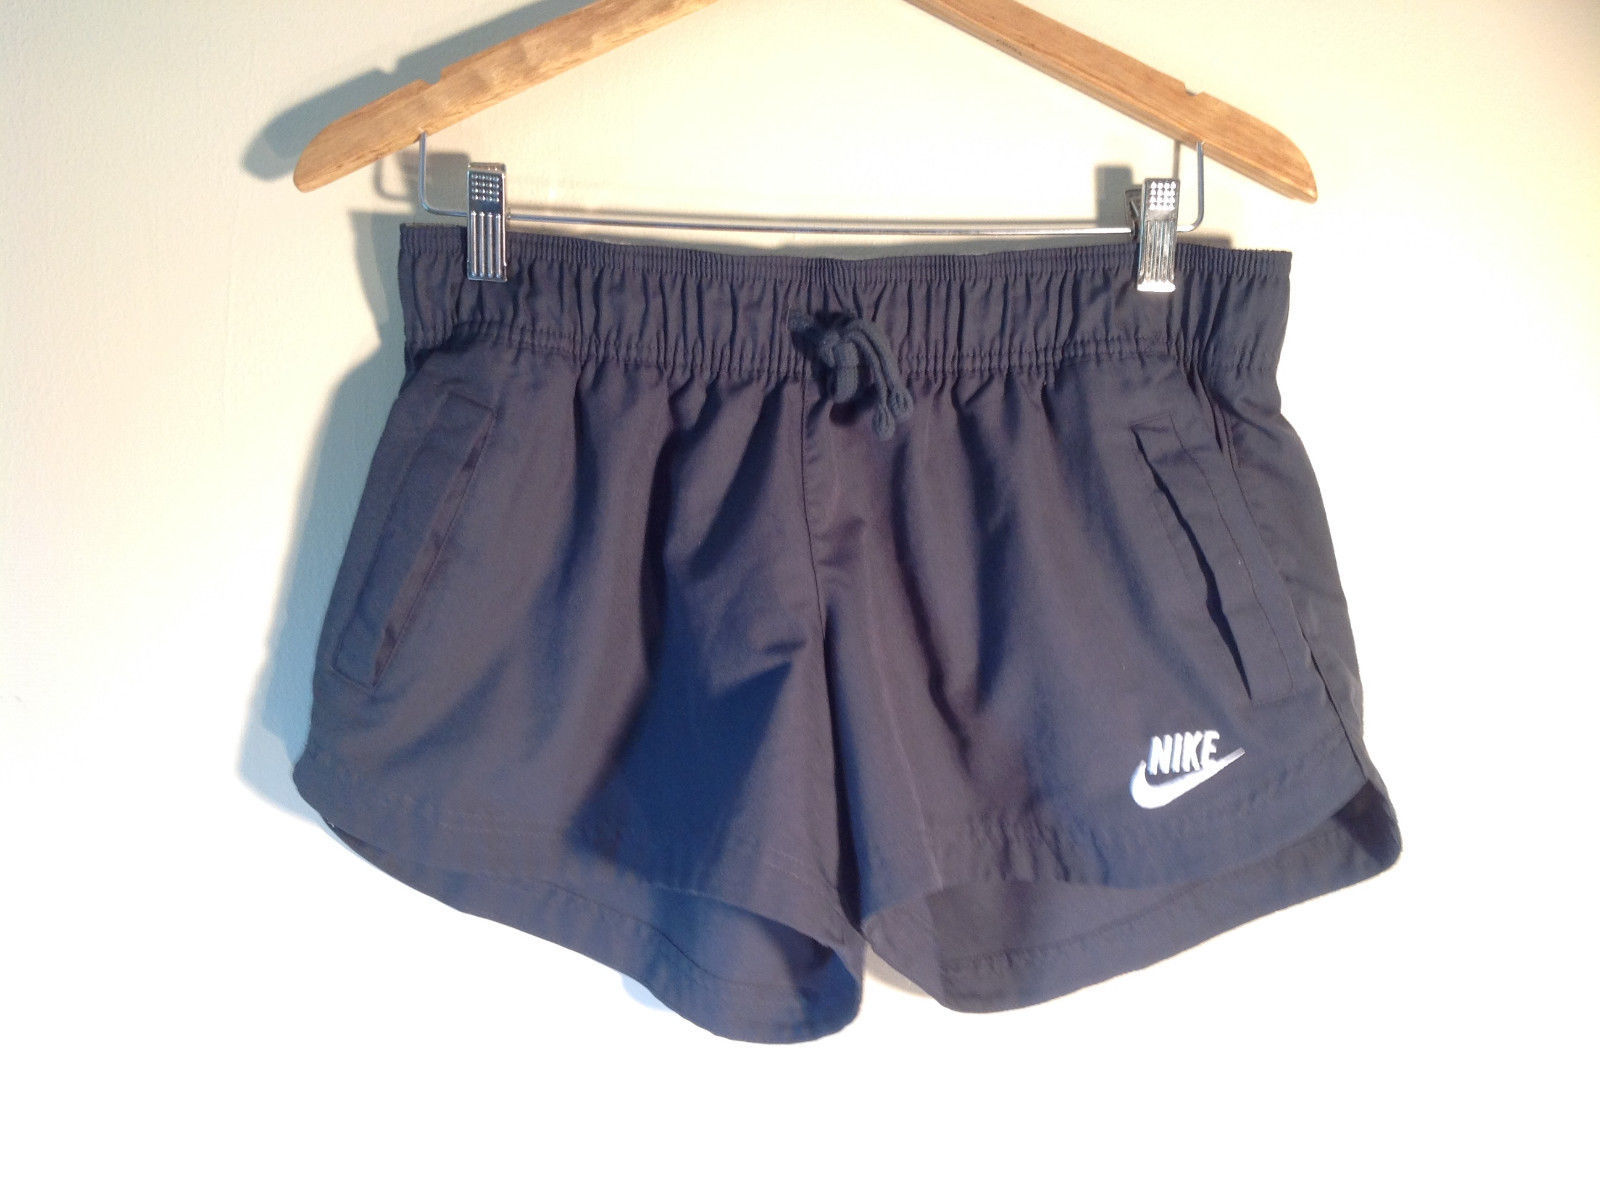 Nike Women's Size 12 or 14 L Gym Shorts Grey + Embroidered Logo & Front Pockets